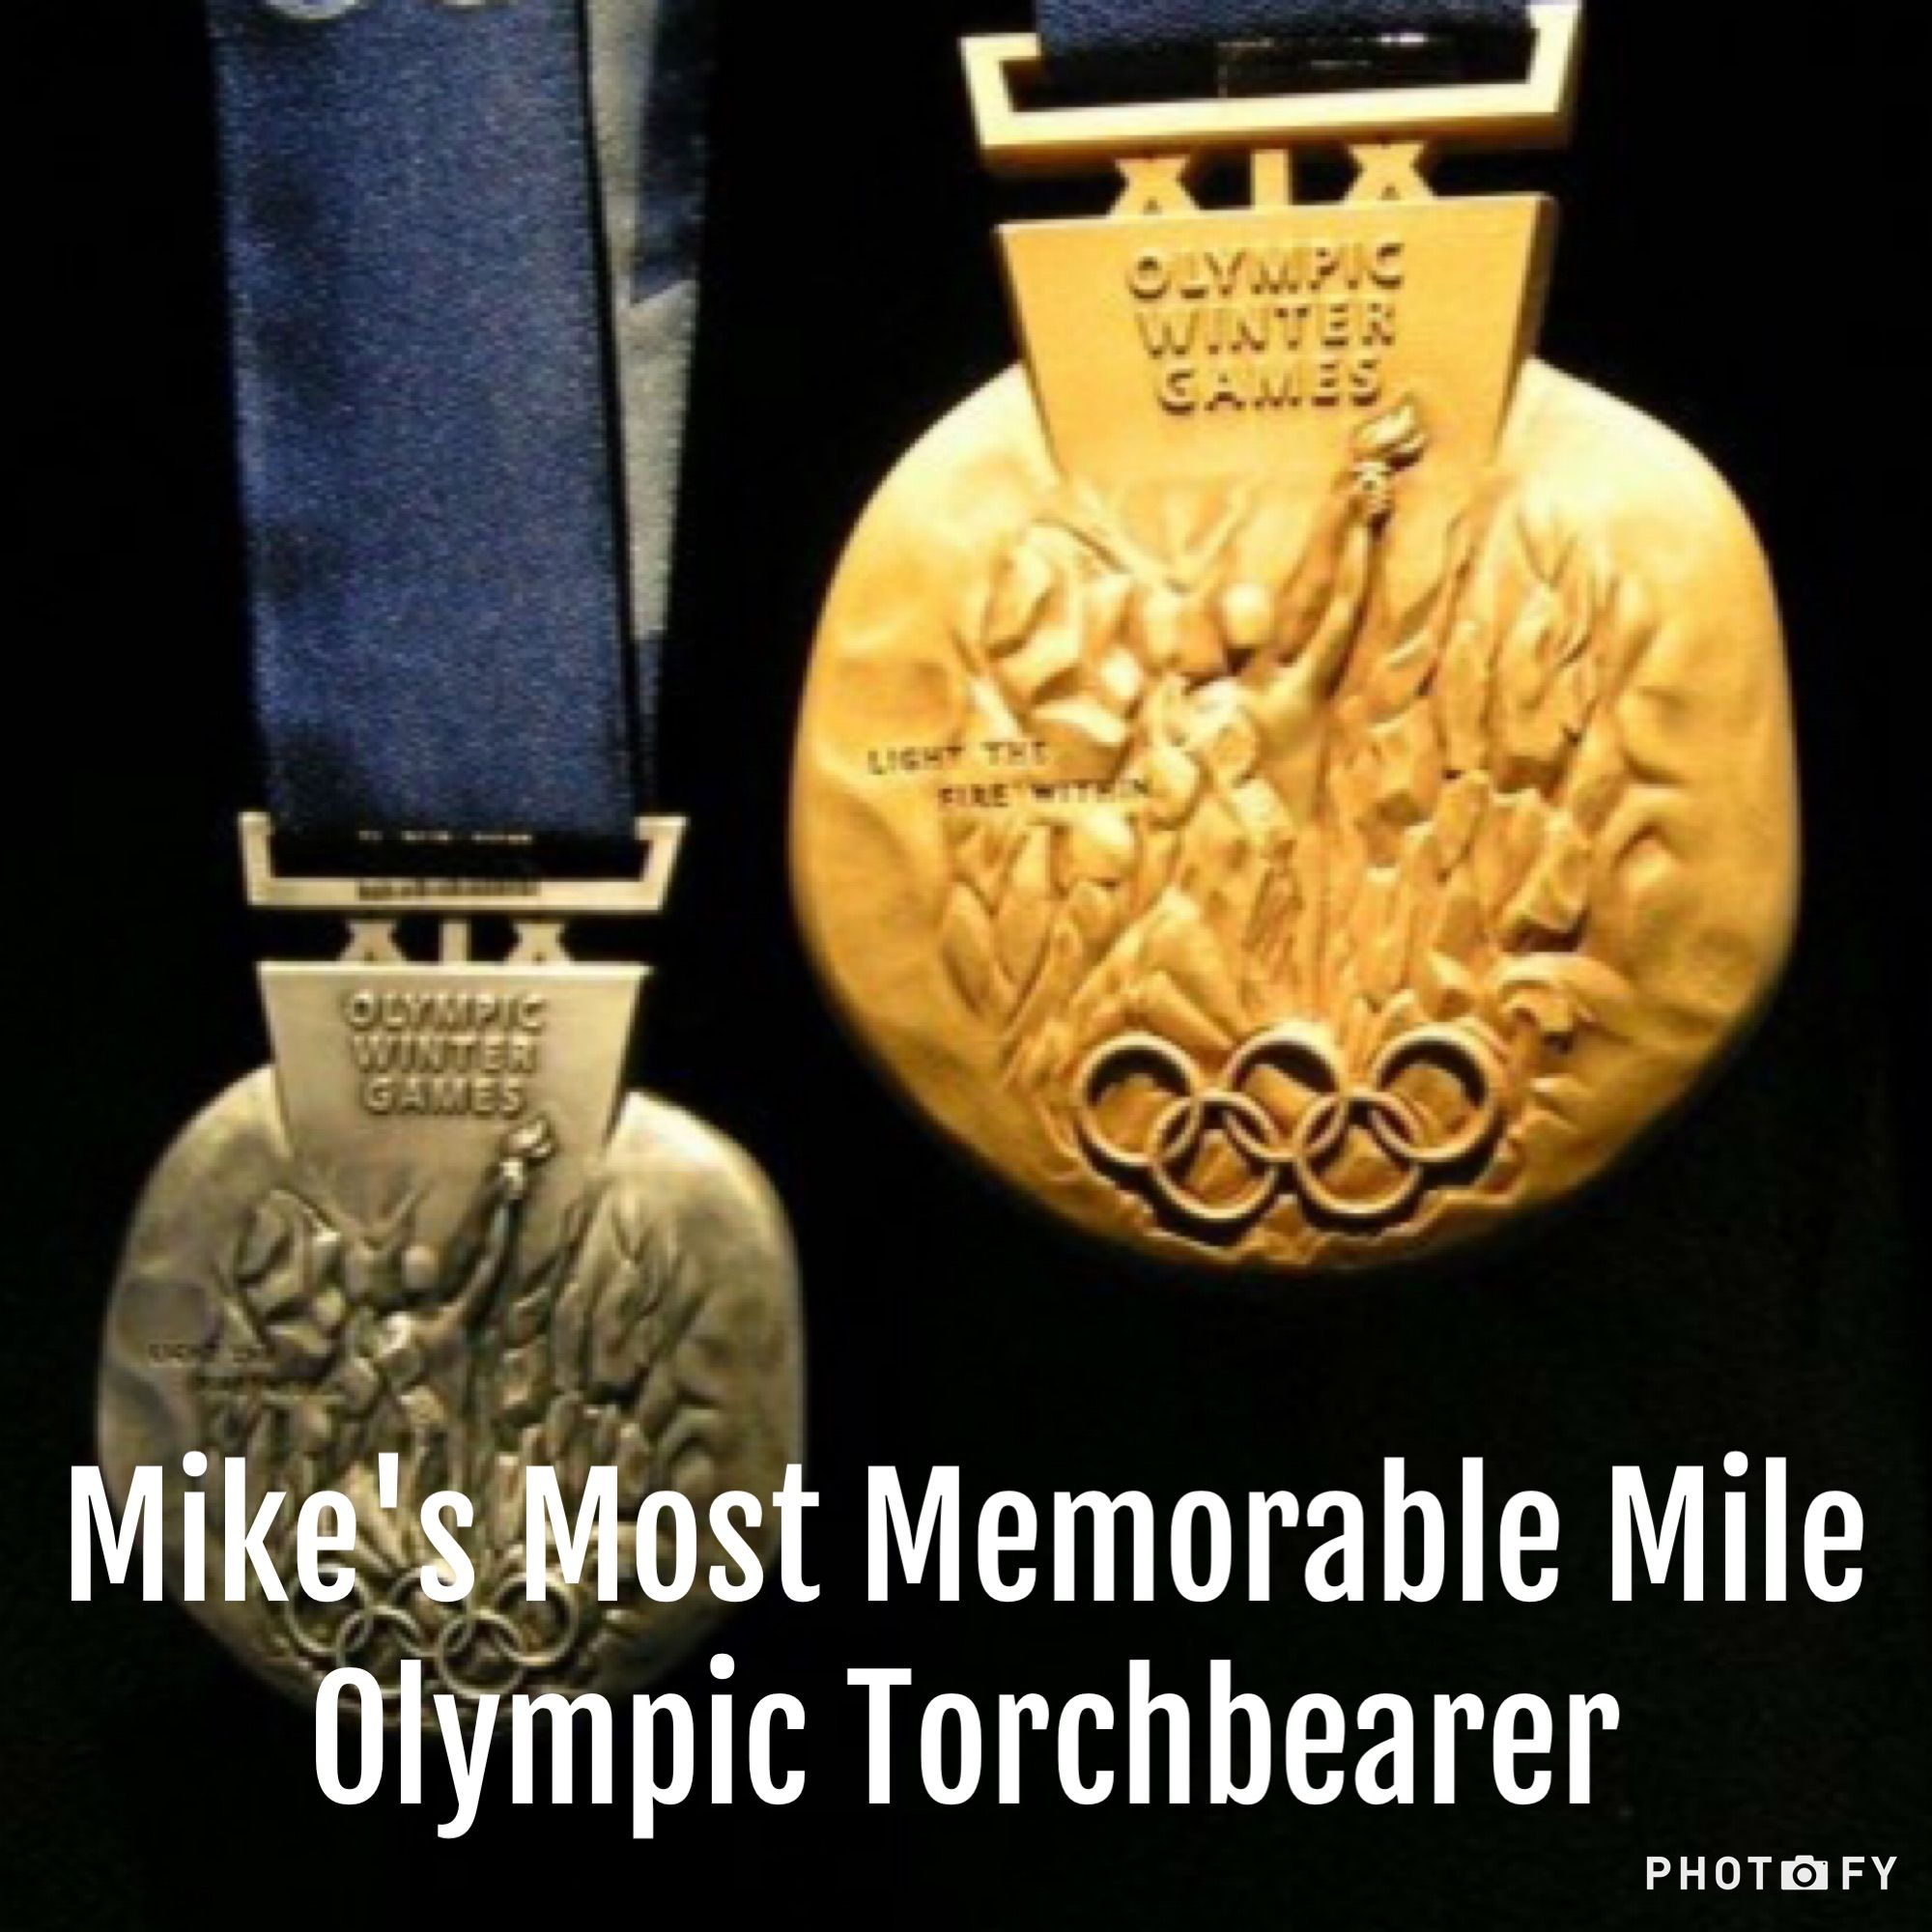 Olympic Torchbearer - Mike's Most Memorable Mile #run #running #runner #olympics #olympictorchbearer #torchbearer #casualrunner #teamcasualrunner #summerolympics #winterolympics